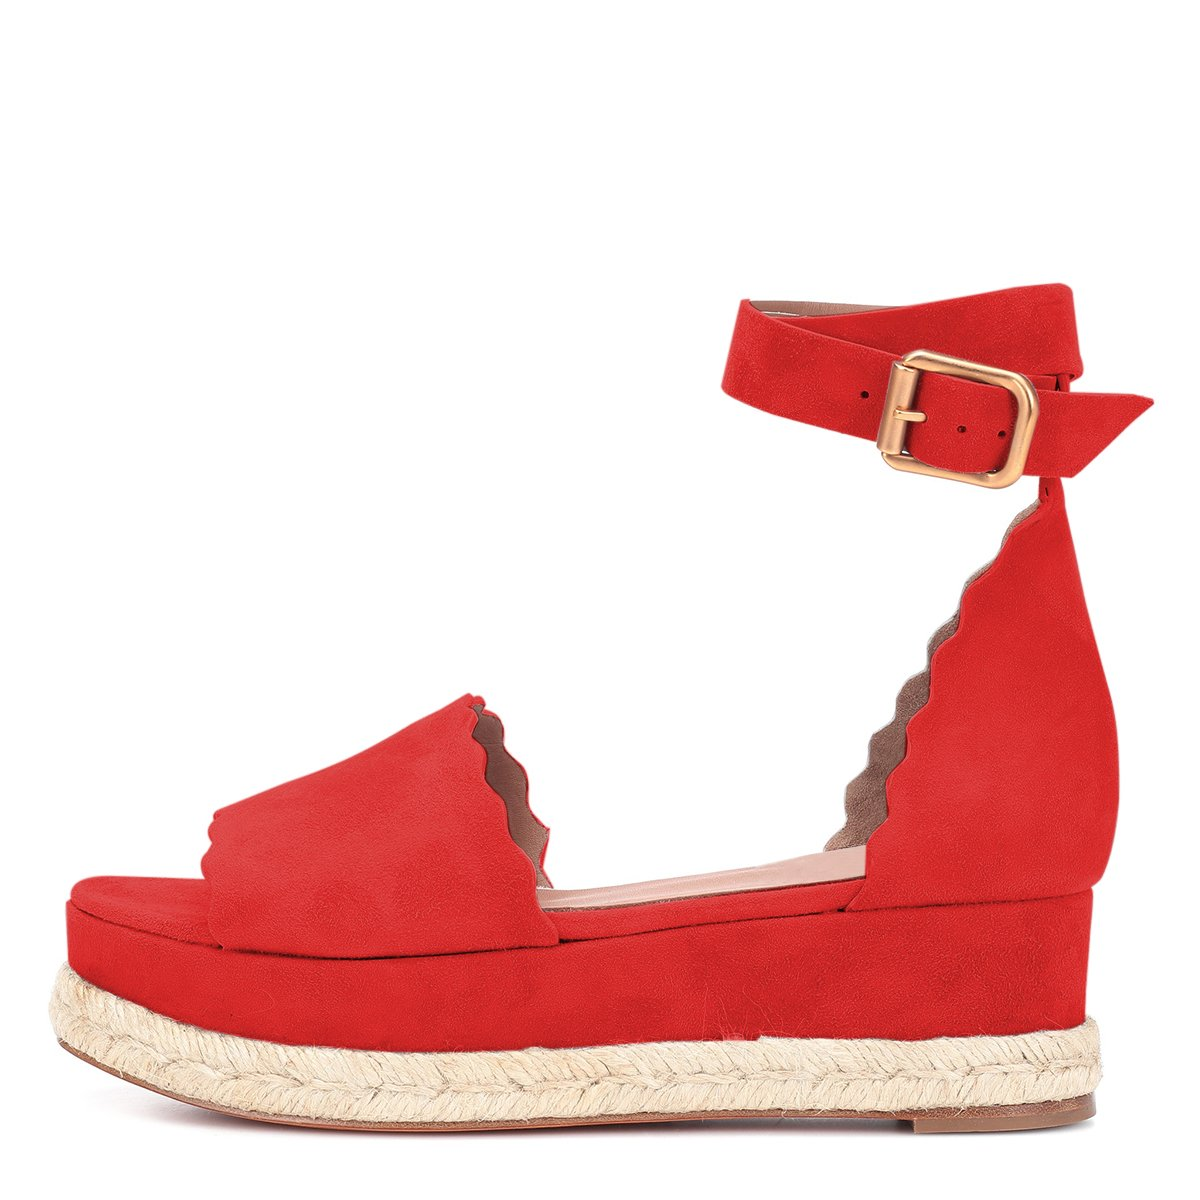 YDN Women Espadrille Peep Toe Ankle Straps Platform Wedge Sandals Low Heels Platform Straps Shoes with Buckle B07DCPCHNH 12 M US|Red 7e6984